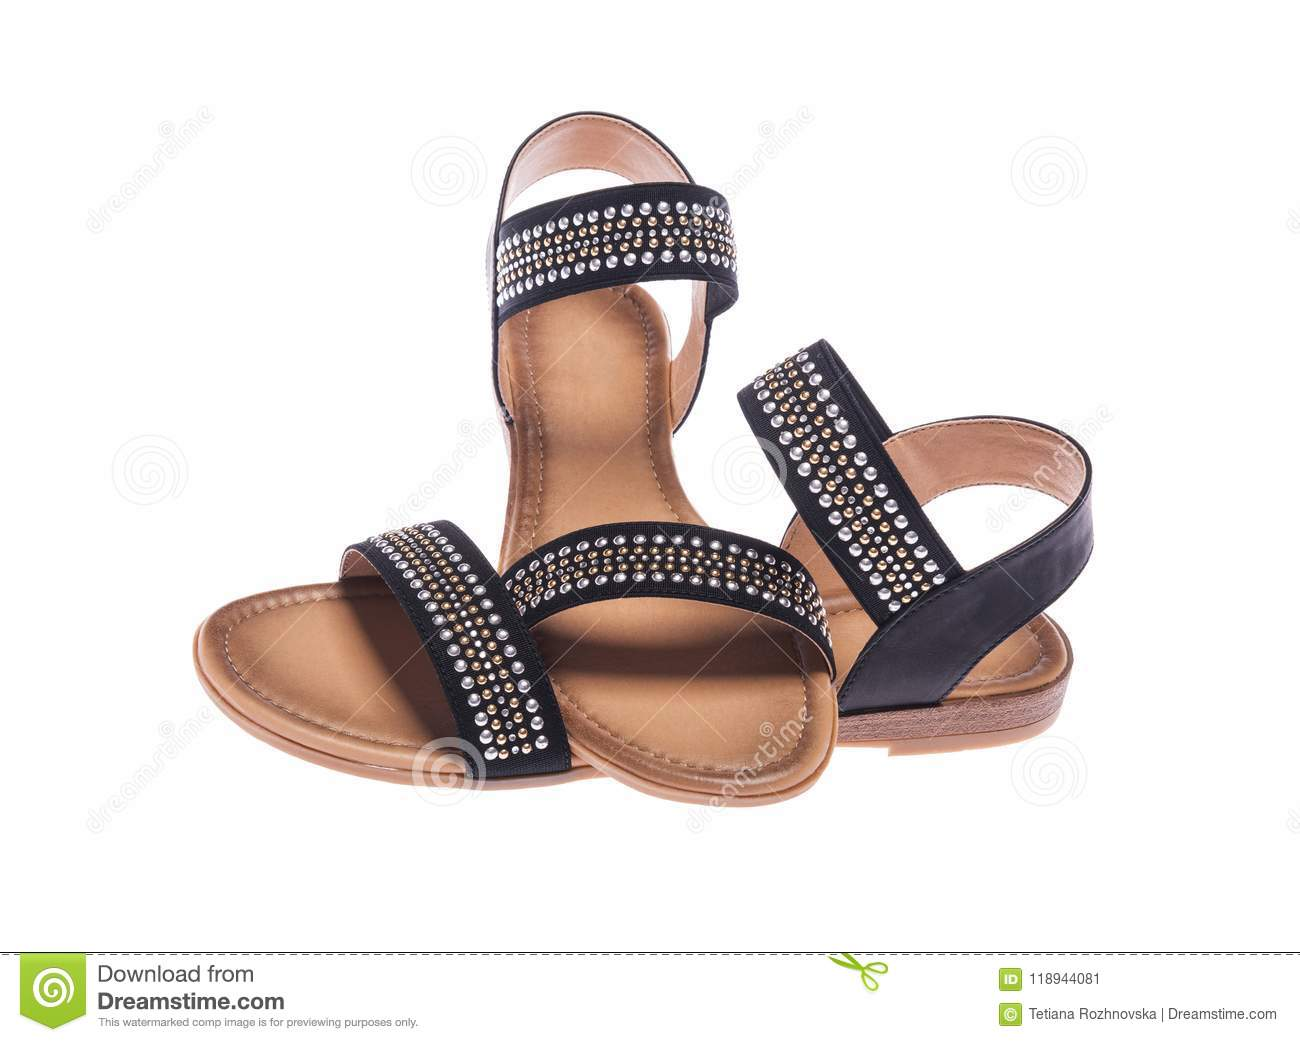 6b9e451a4a374 Black female sandals. stock image. Image of leather - 118944081